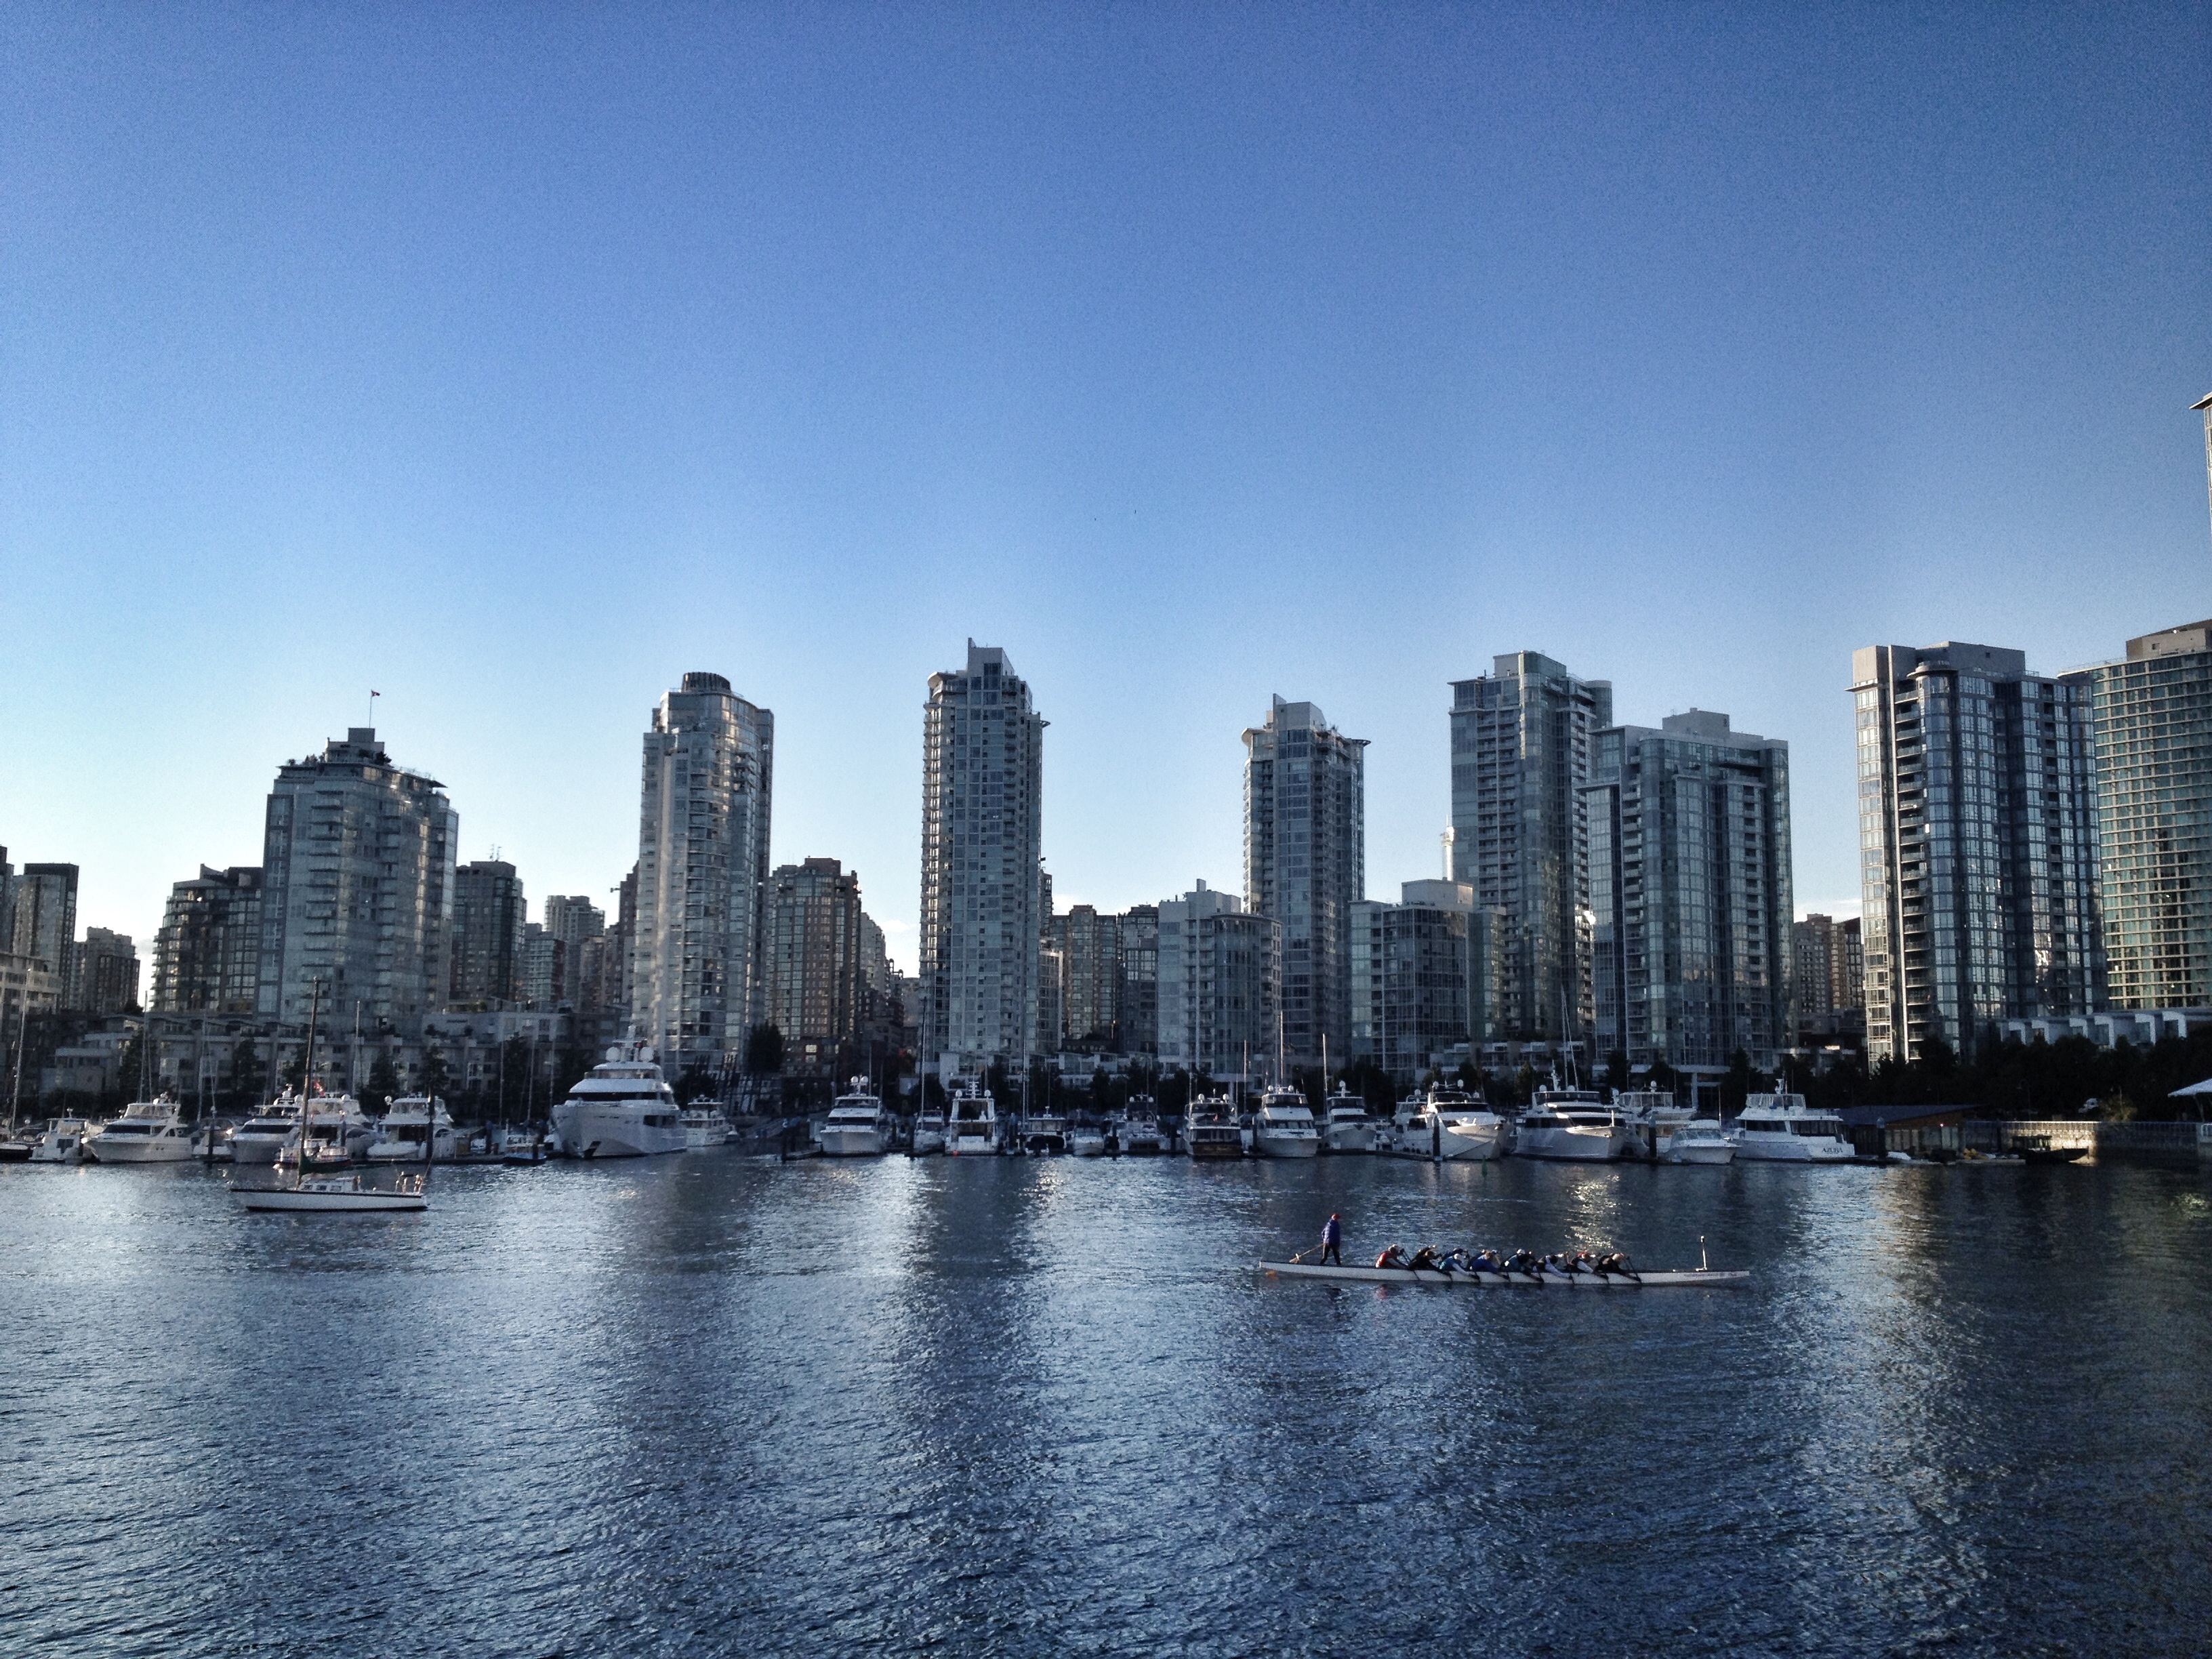 Savoir there 5 stylish places to visit in vancouver for Places to visit vancouver